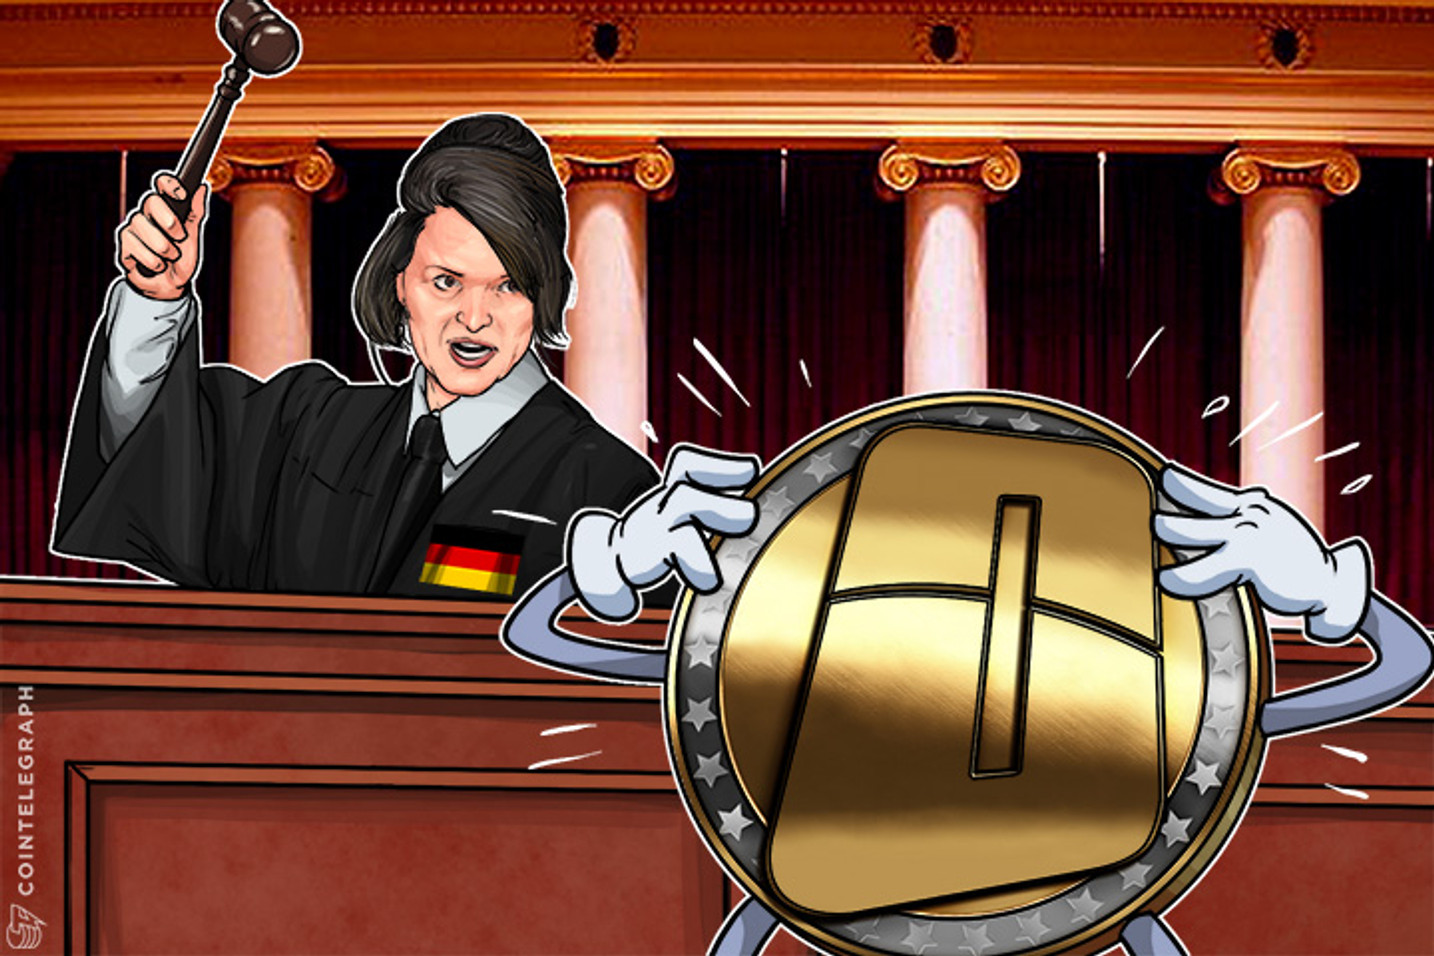 OneCoin Partner Banned in Germany, Threatened With €1.5 Mln Fine